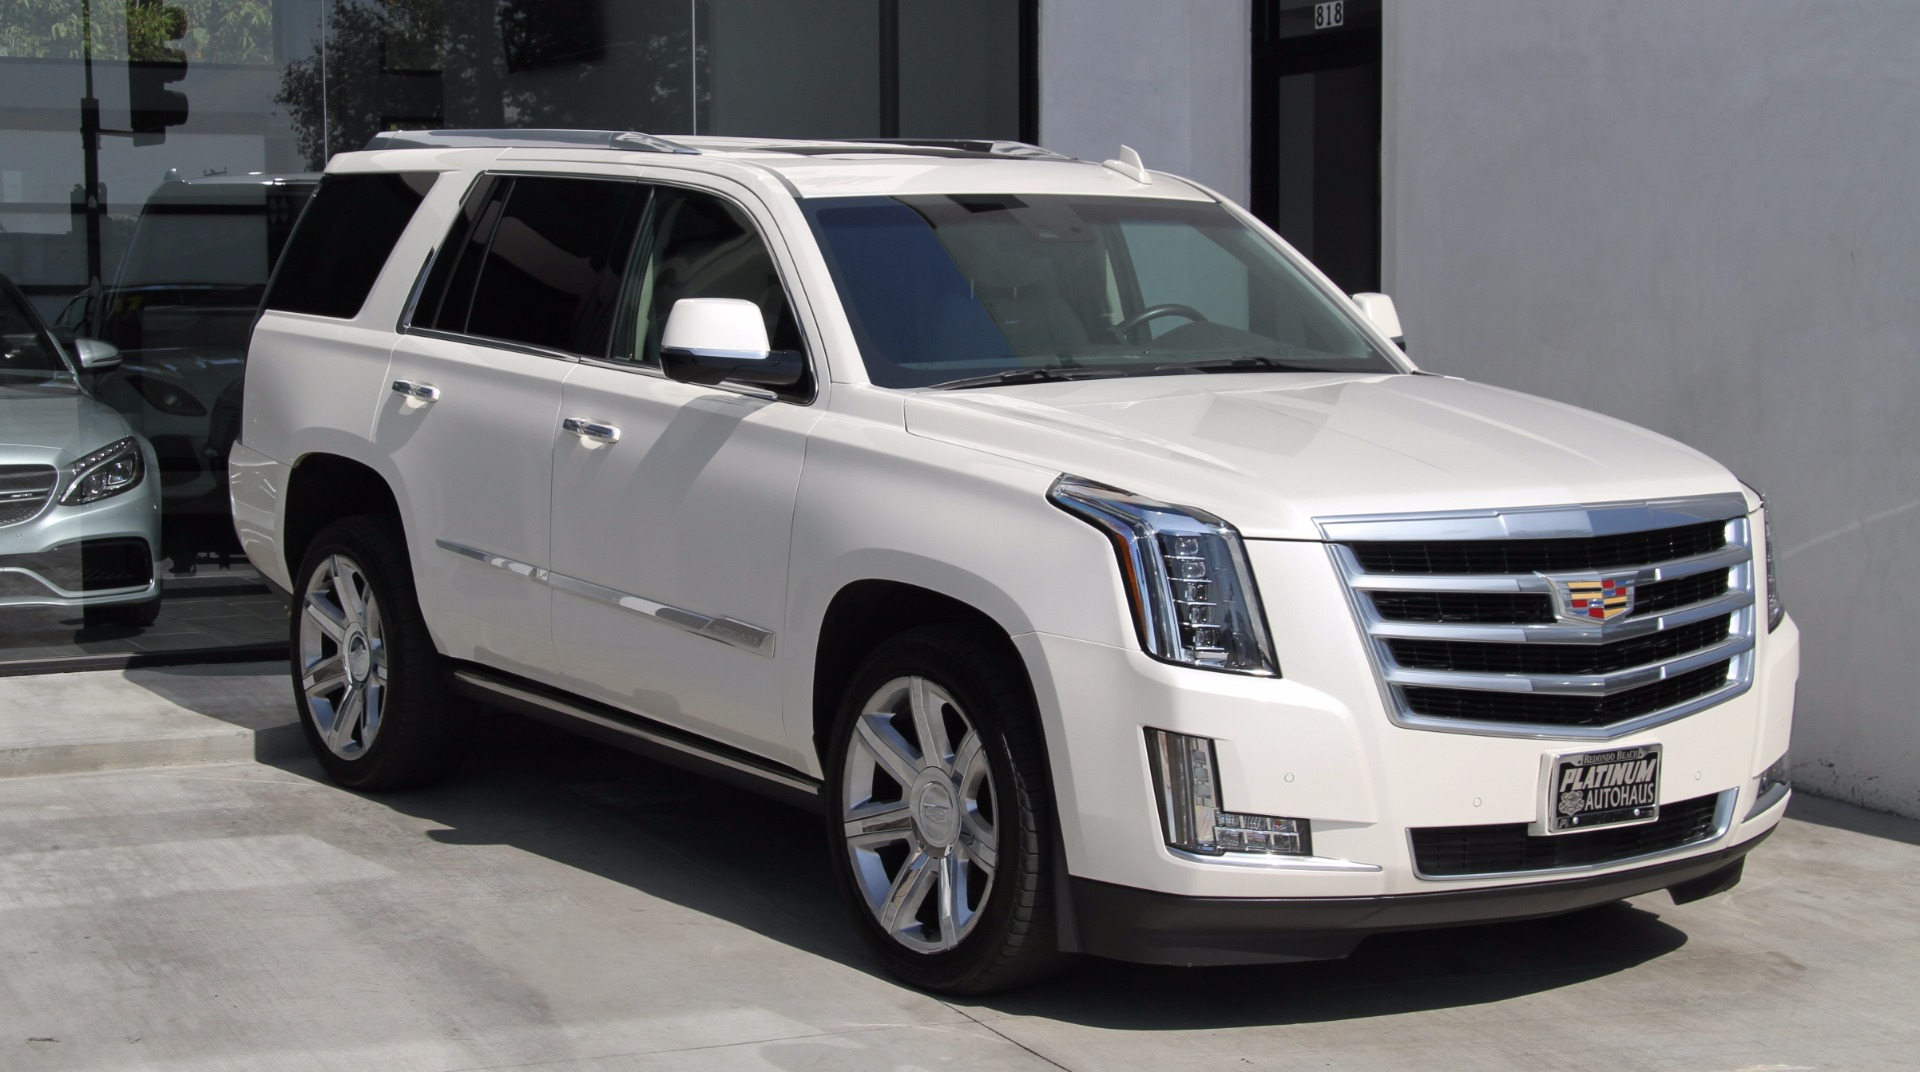 2015 cadillac escalade premium stock 6020 for sale near for General motors dealers near me